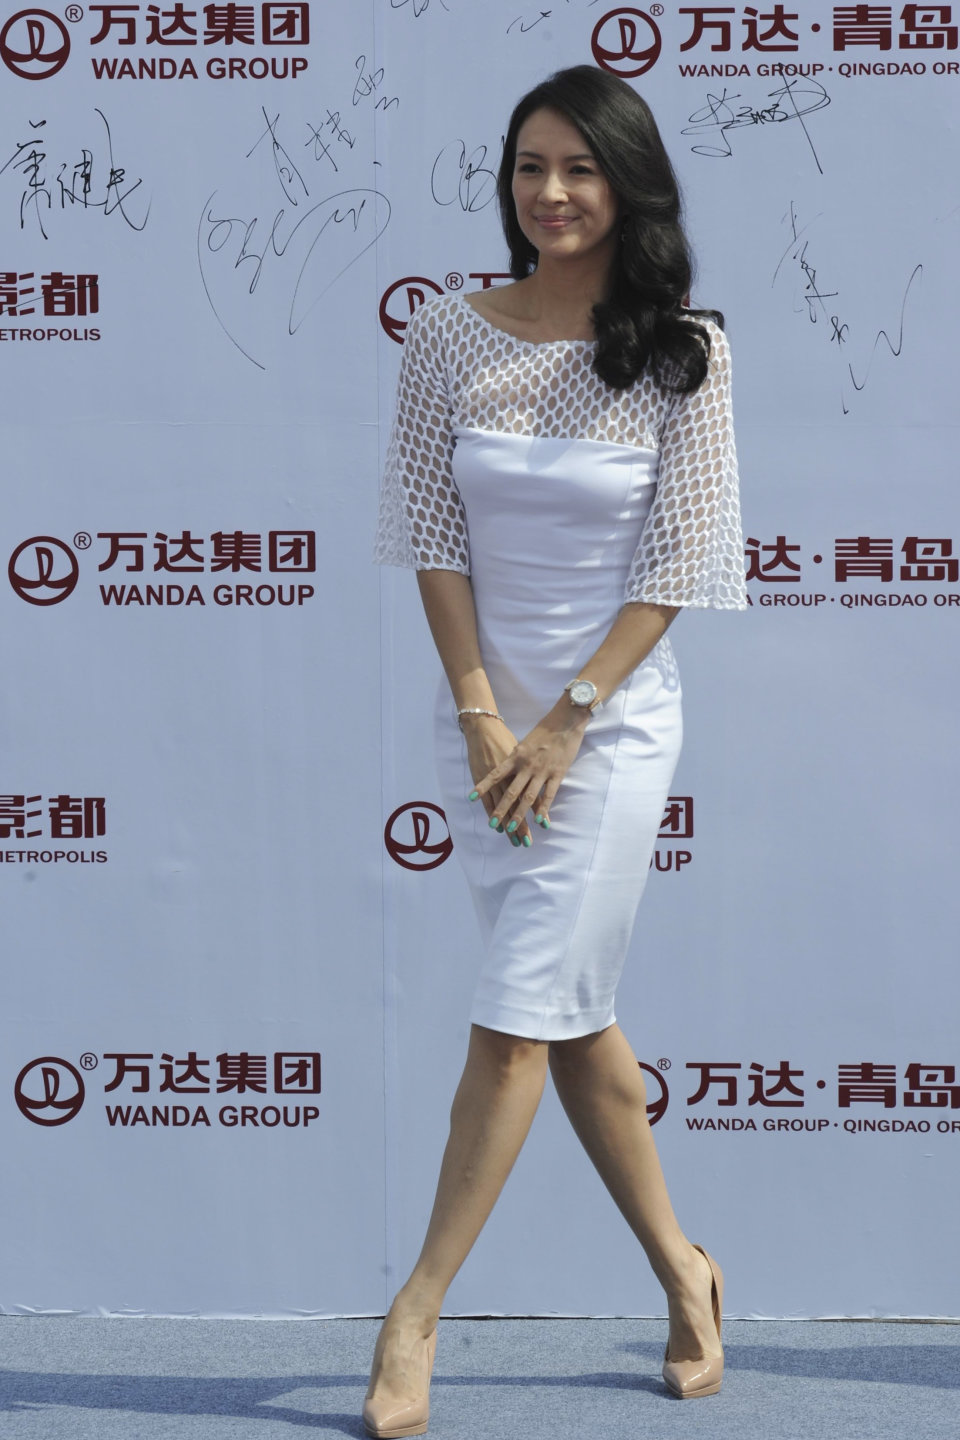 Actress Zhang Ziyi attends the launching ceremony of Qingdao Oriental Movie Metropolis in Qingdao in east China's Shandong province, Sunday, Sept. 22, 2013. (AP Photo)